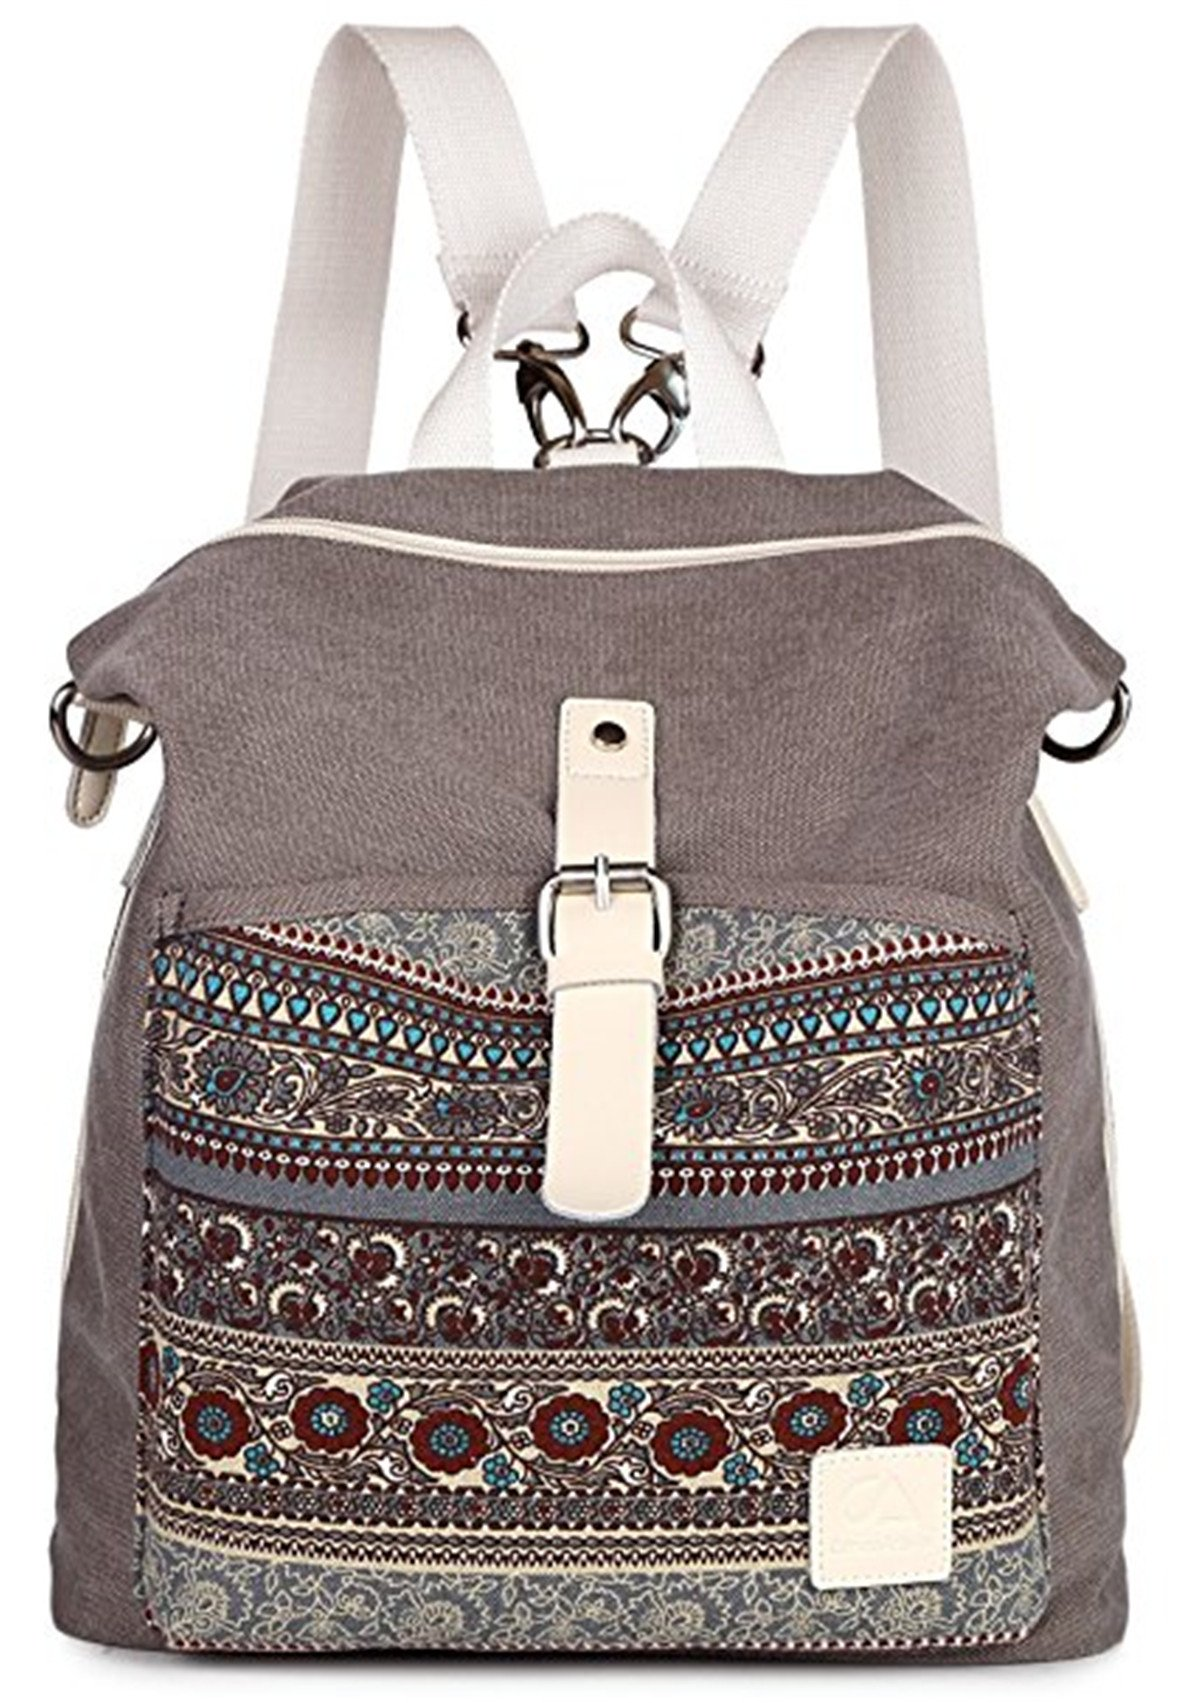 LittleBear Women Girl Backpack Purse Canvas Rucksack Shoulder Bag (Grey)